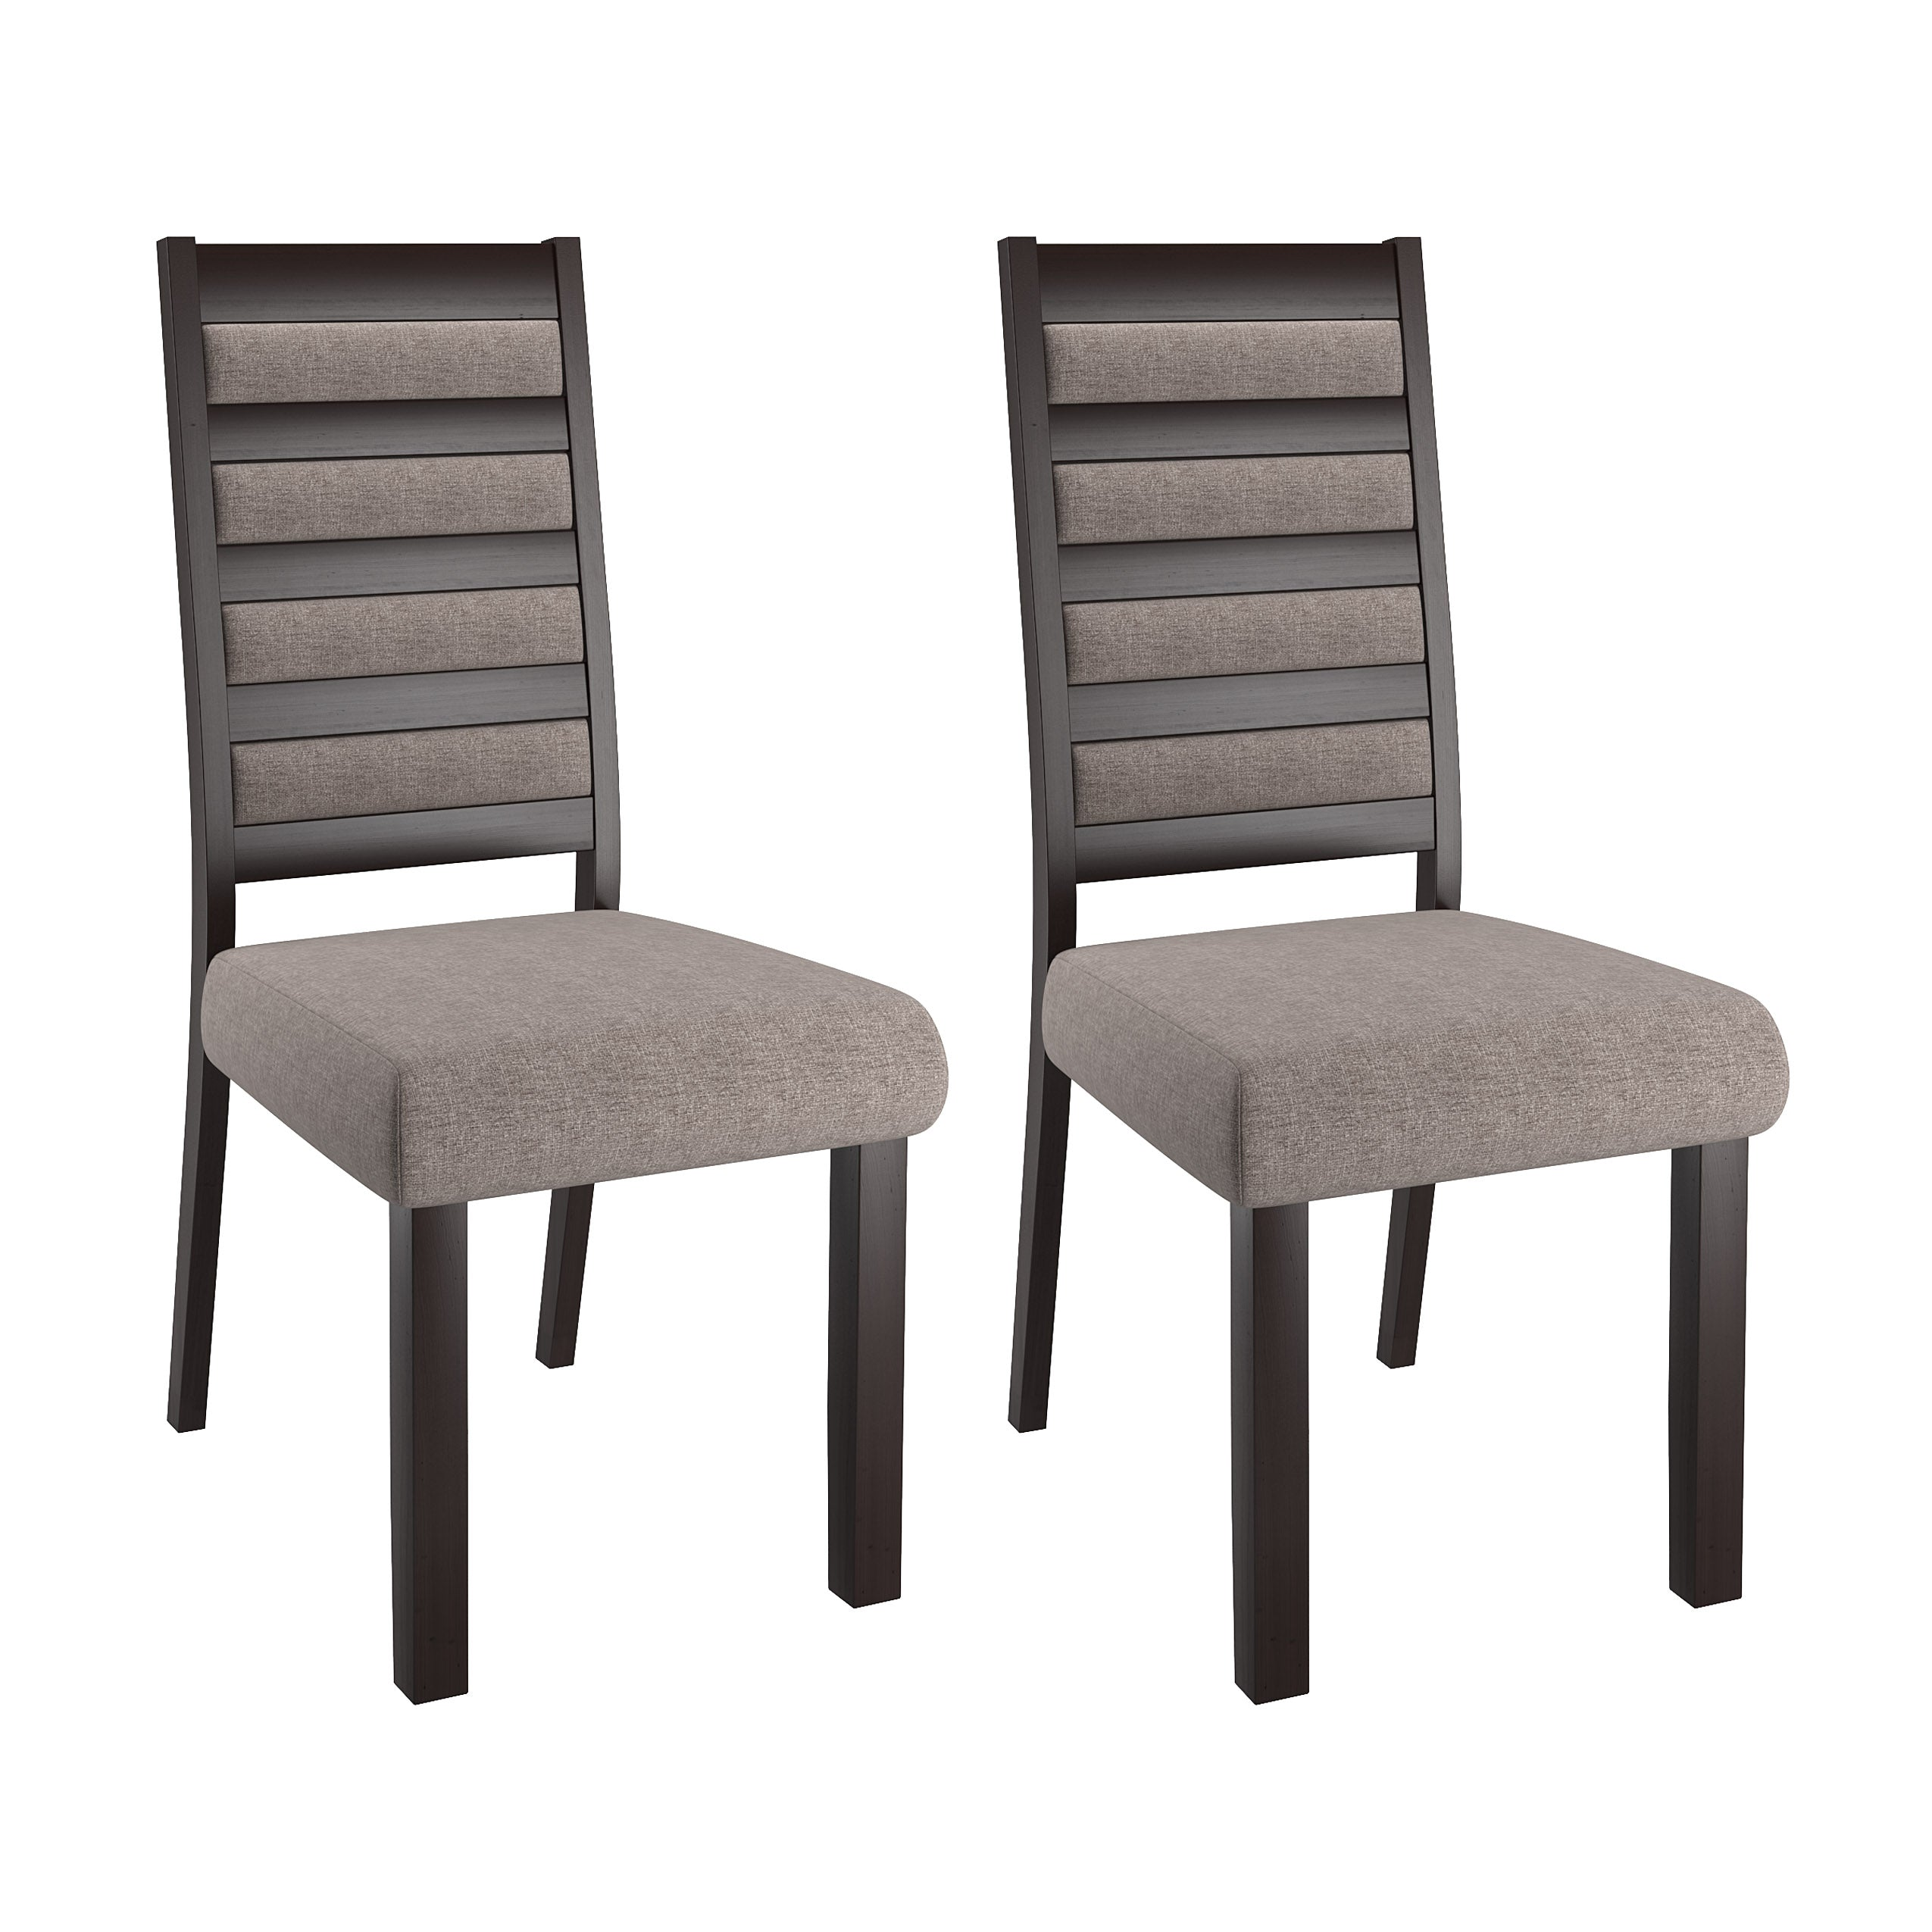 official photos 7a751 07577 Ladder Back Grey Dining Chairs, Set of 2 - *CLEARANCE*